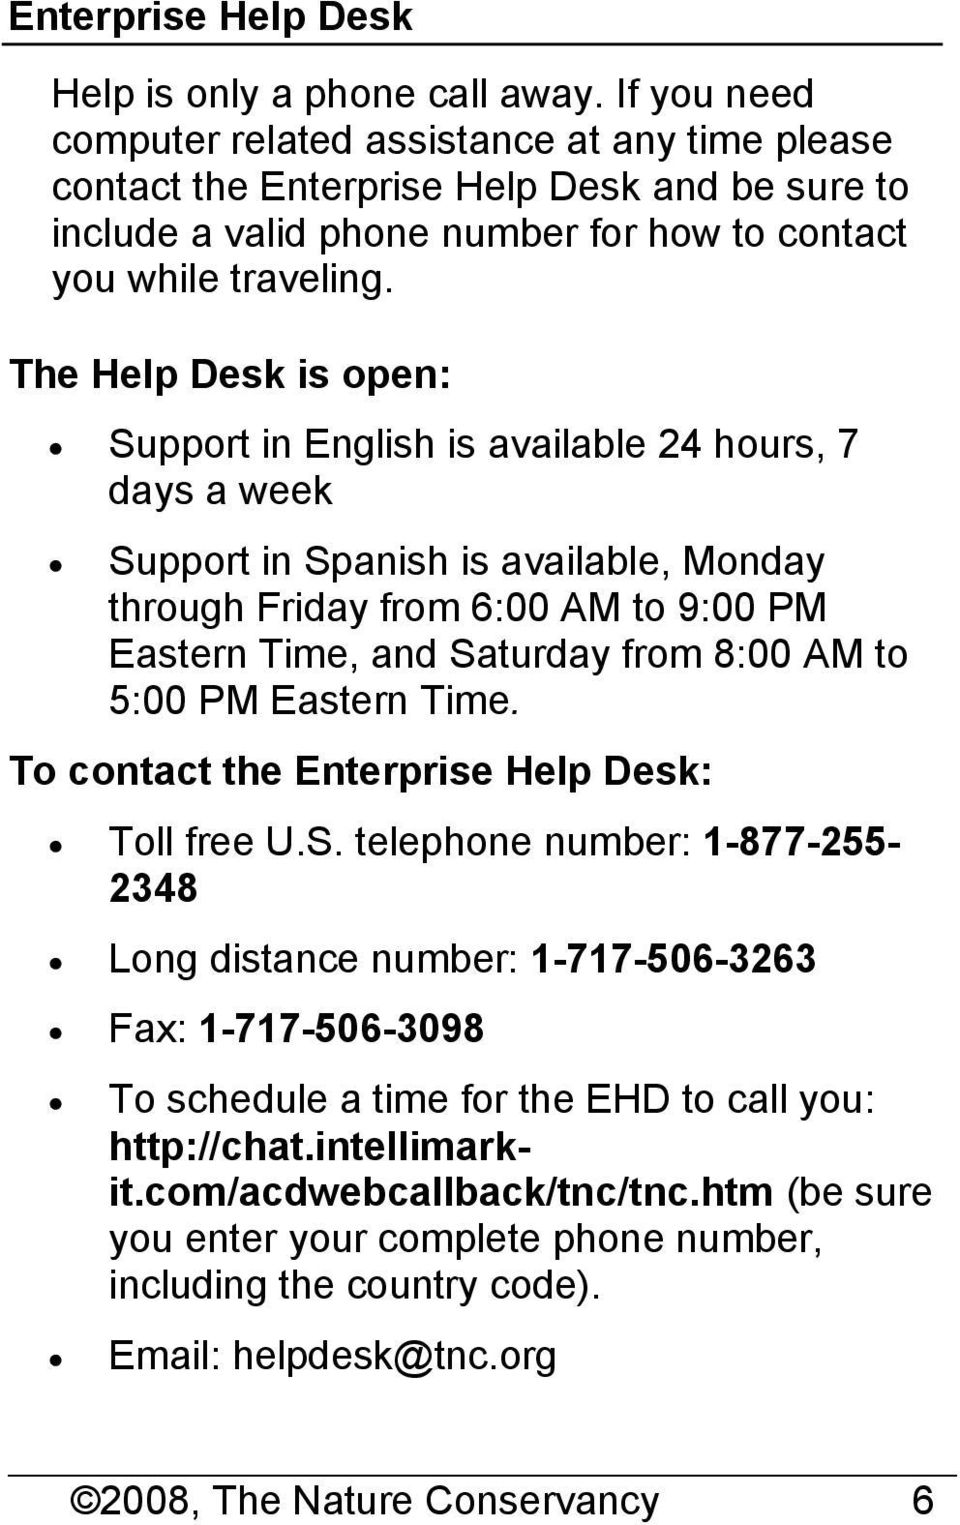 The Help Desk is open: Support in English is available 24 hours, 7 days a week Support in Spanish is available, Monday through Friday from 6:00 AM to 9:00 PM Eastern Time, and Saturday from 8:00 AM